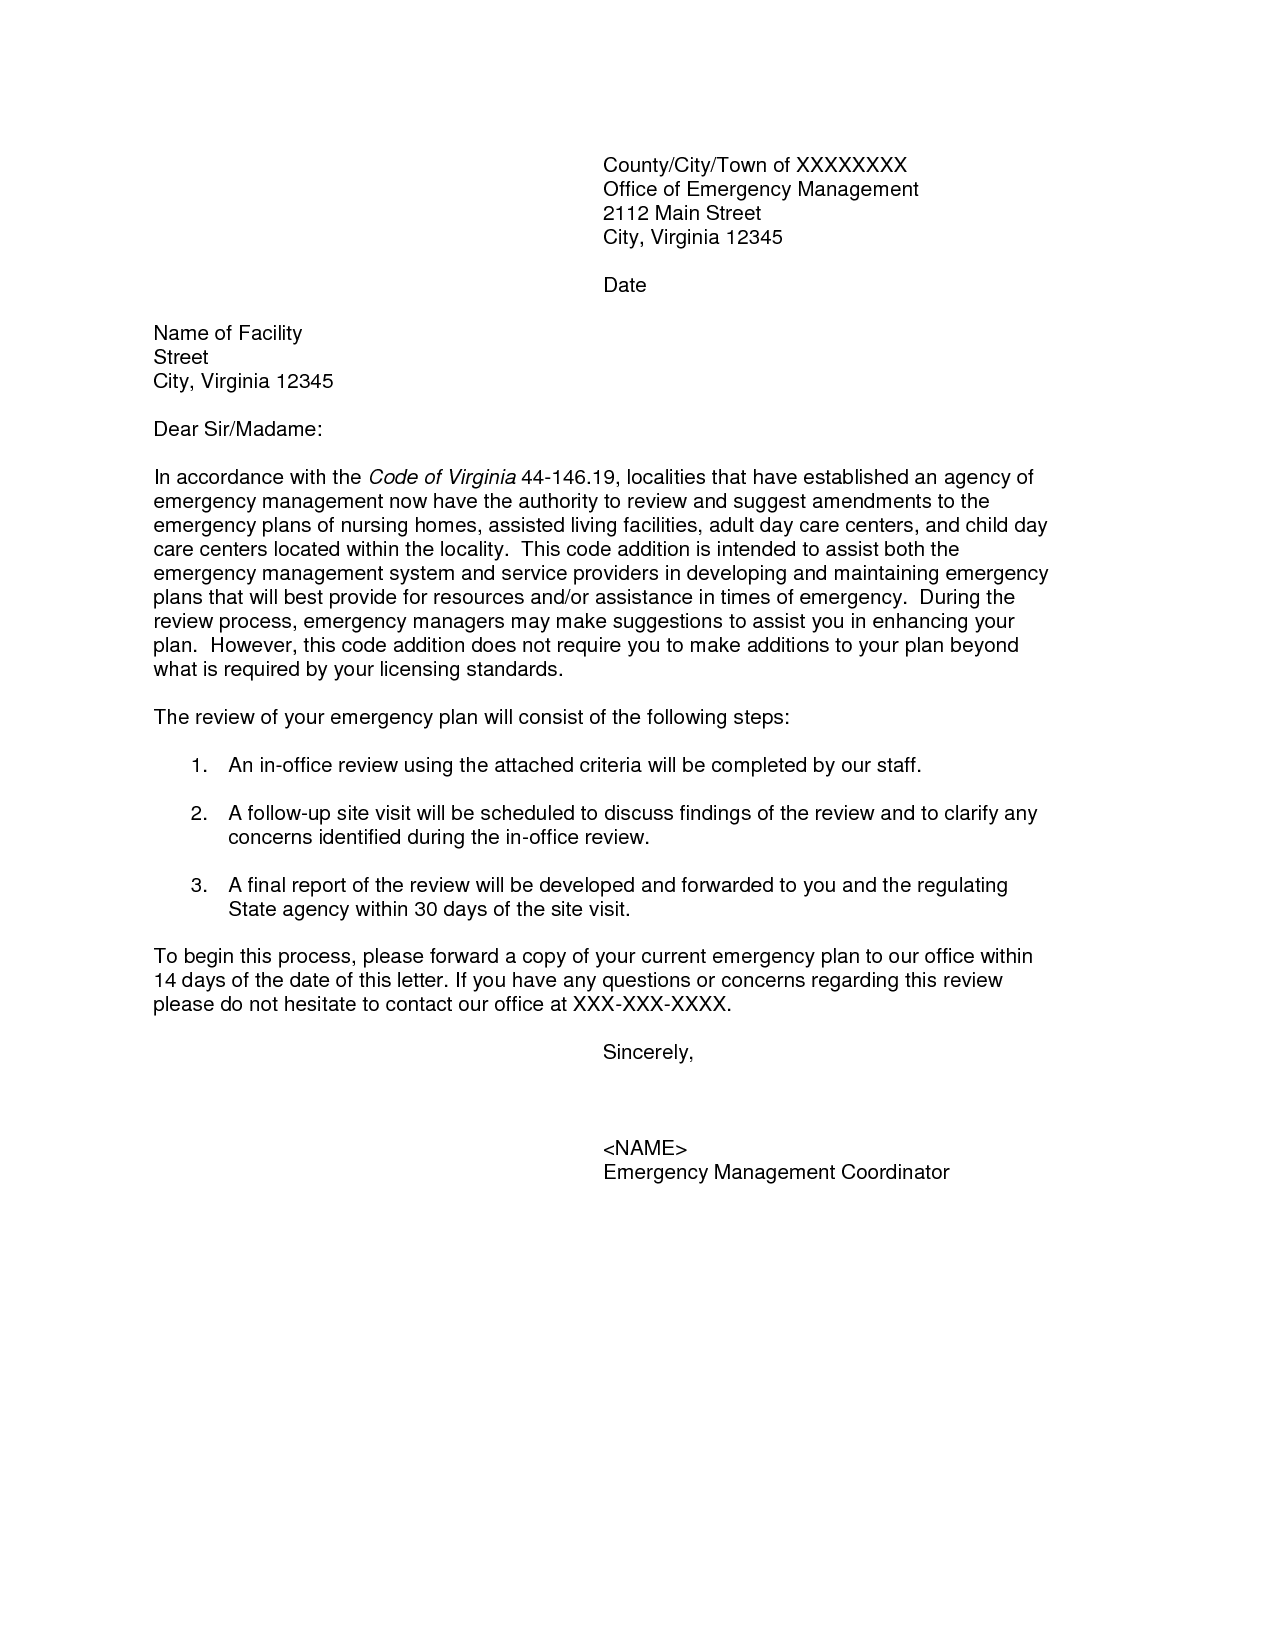 Sample Business Letter Excel Examples of Reference Letters Request – Example Business Letter